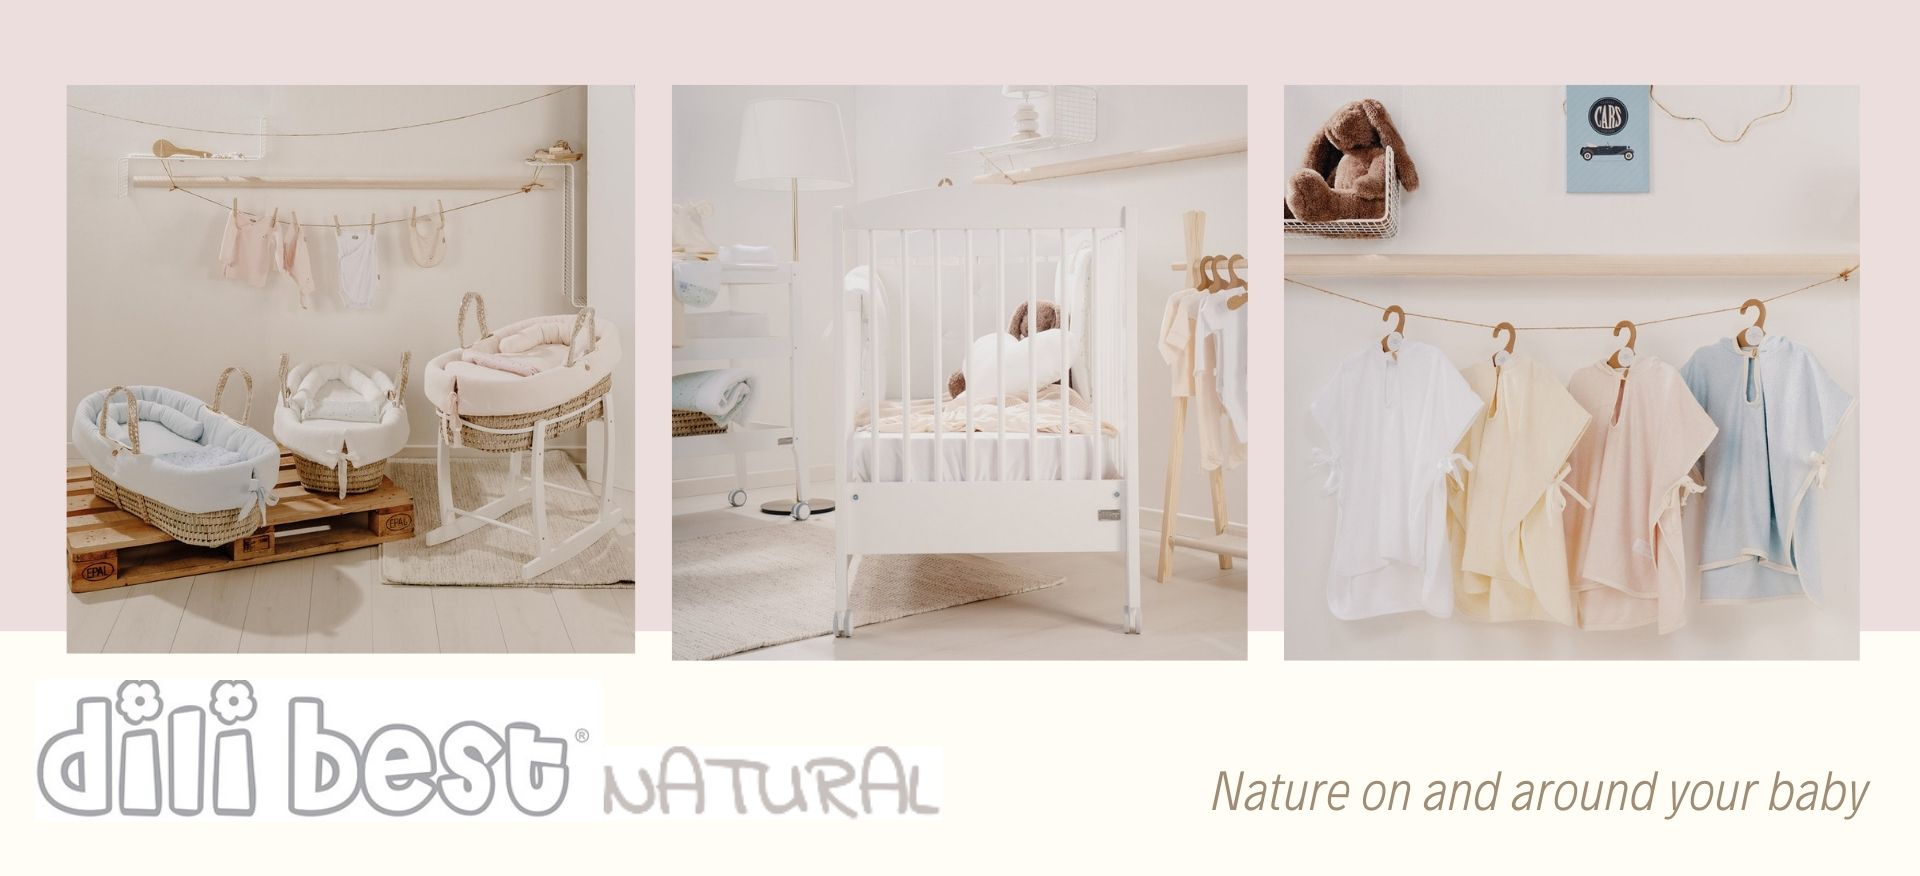 Banner Dili Best Natural 1920x876